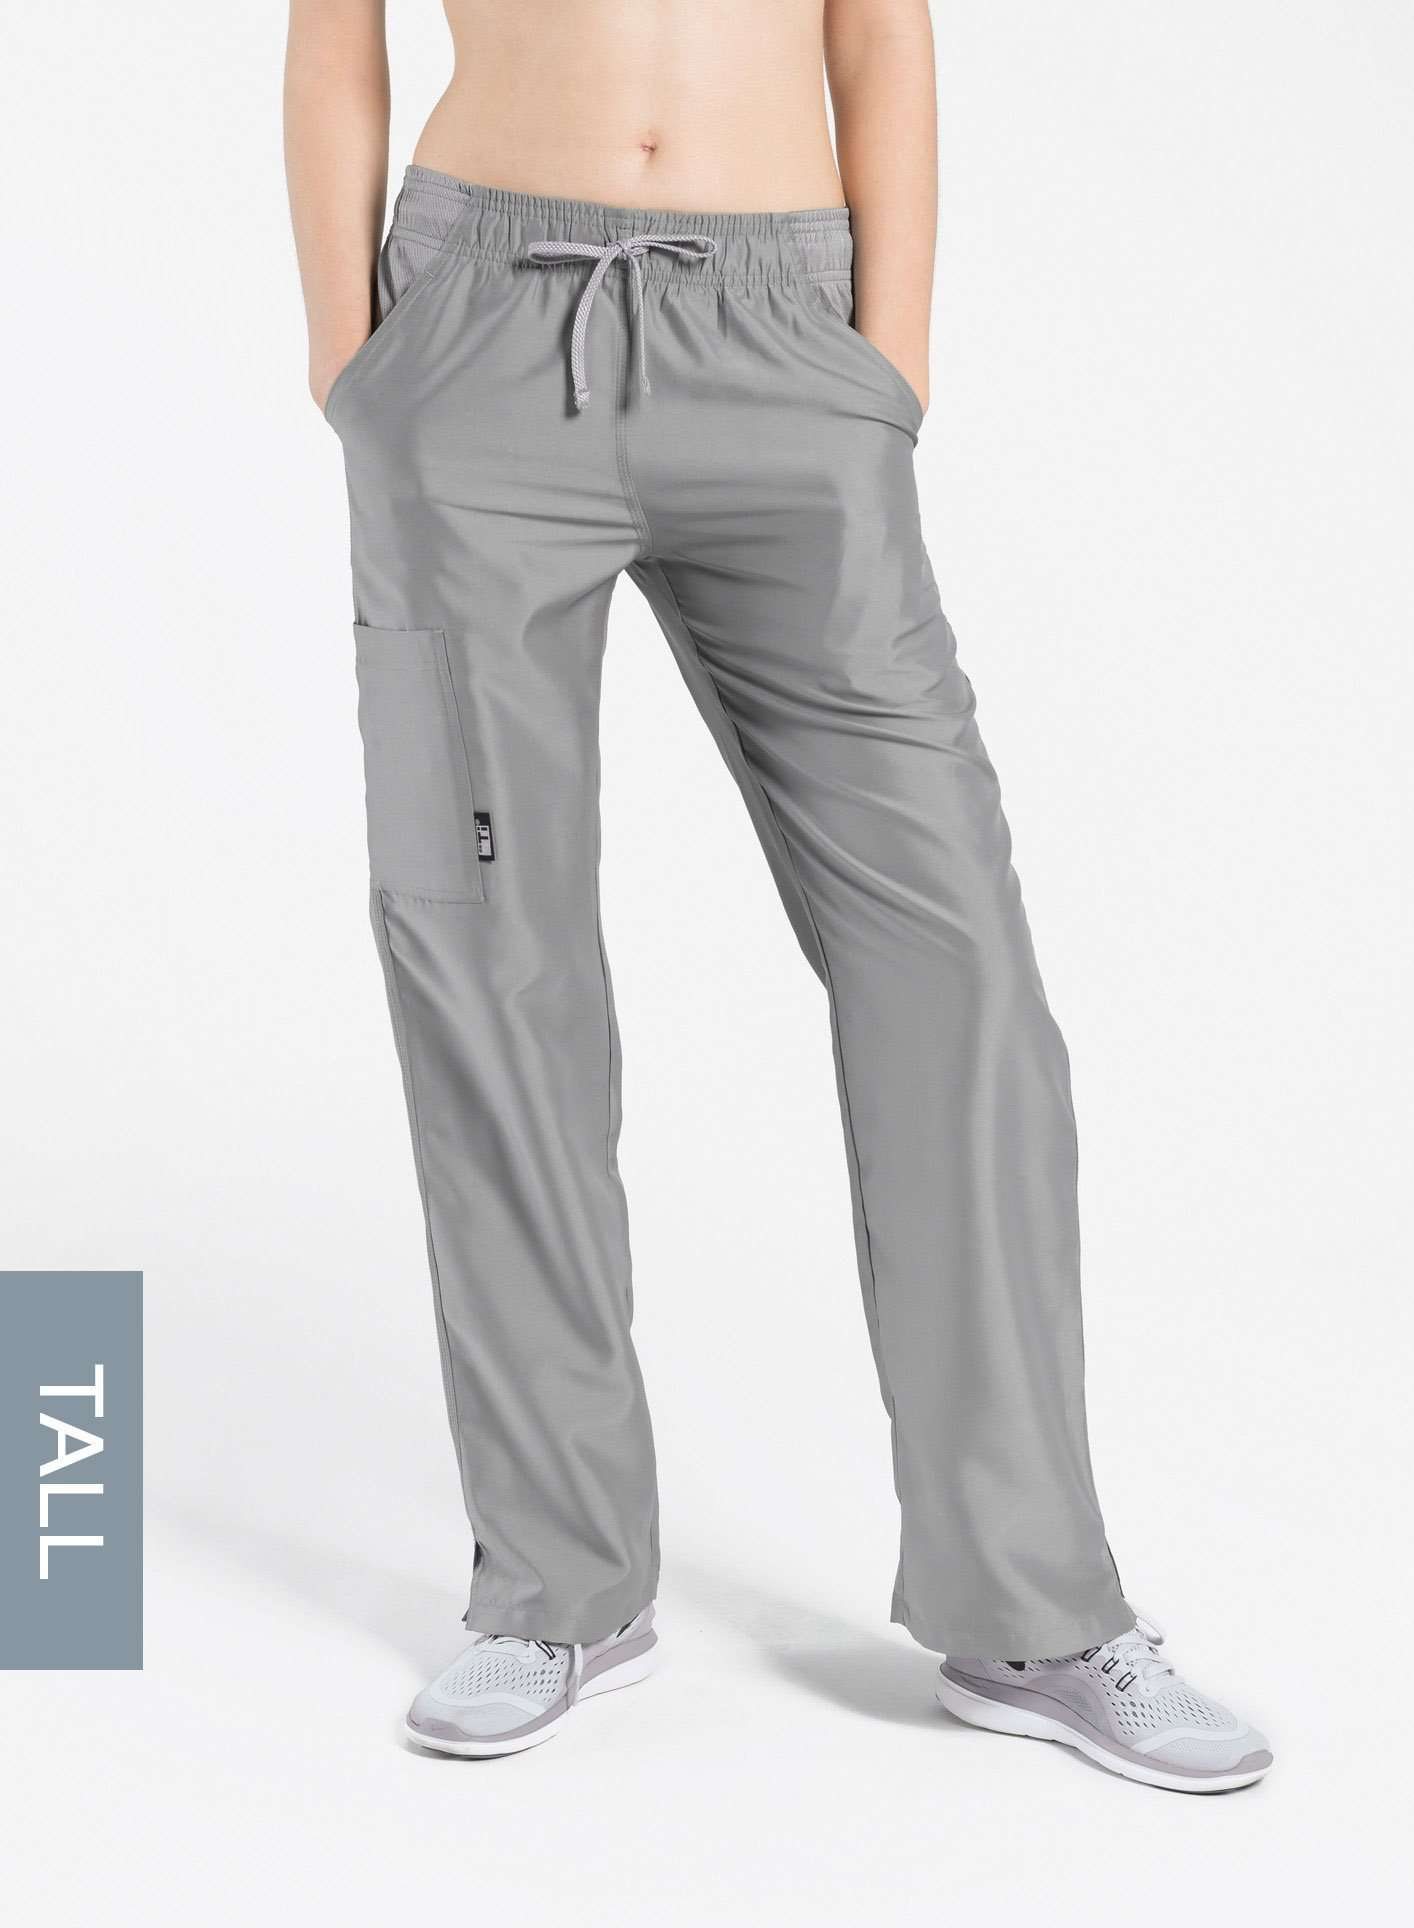 womens tall cargo pocket straight leg scrub pants light grey Elements front